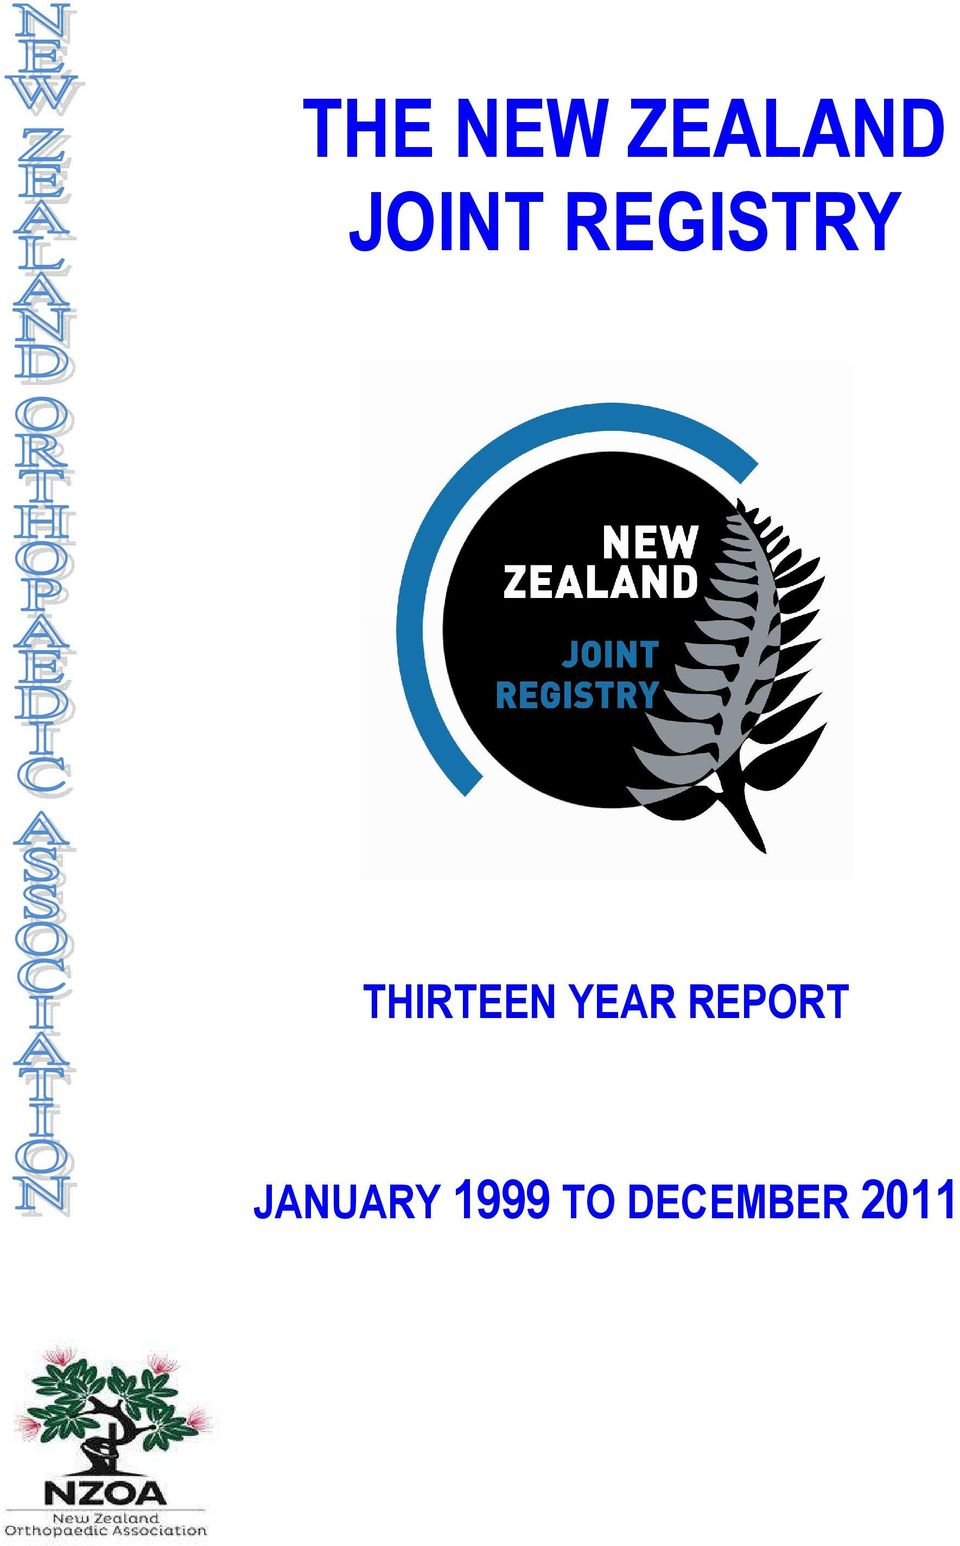 THIRTEEN YEAR REPORT